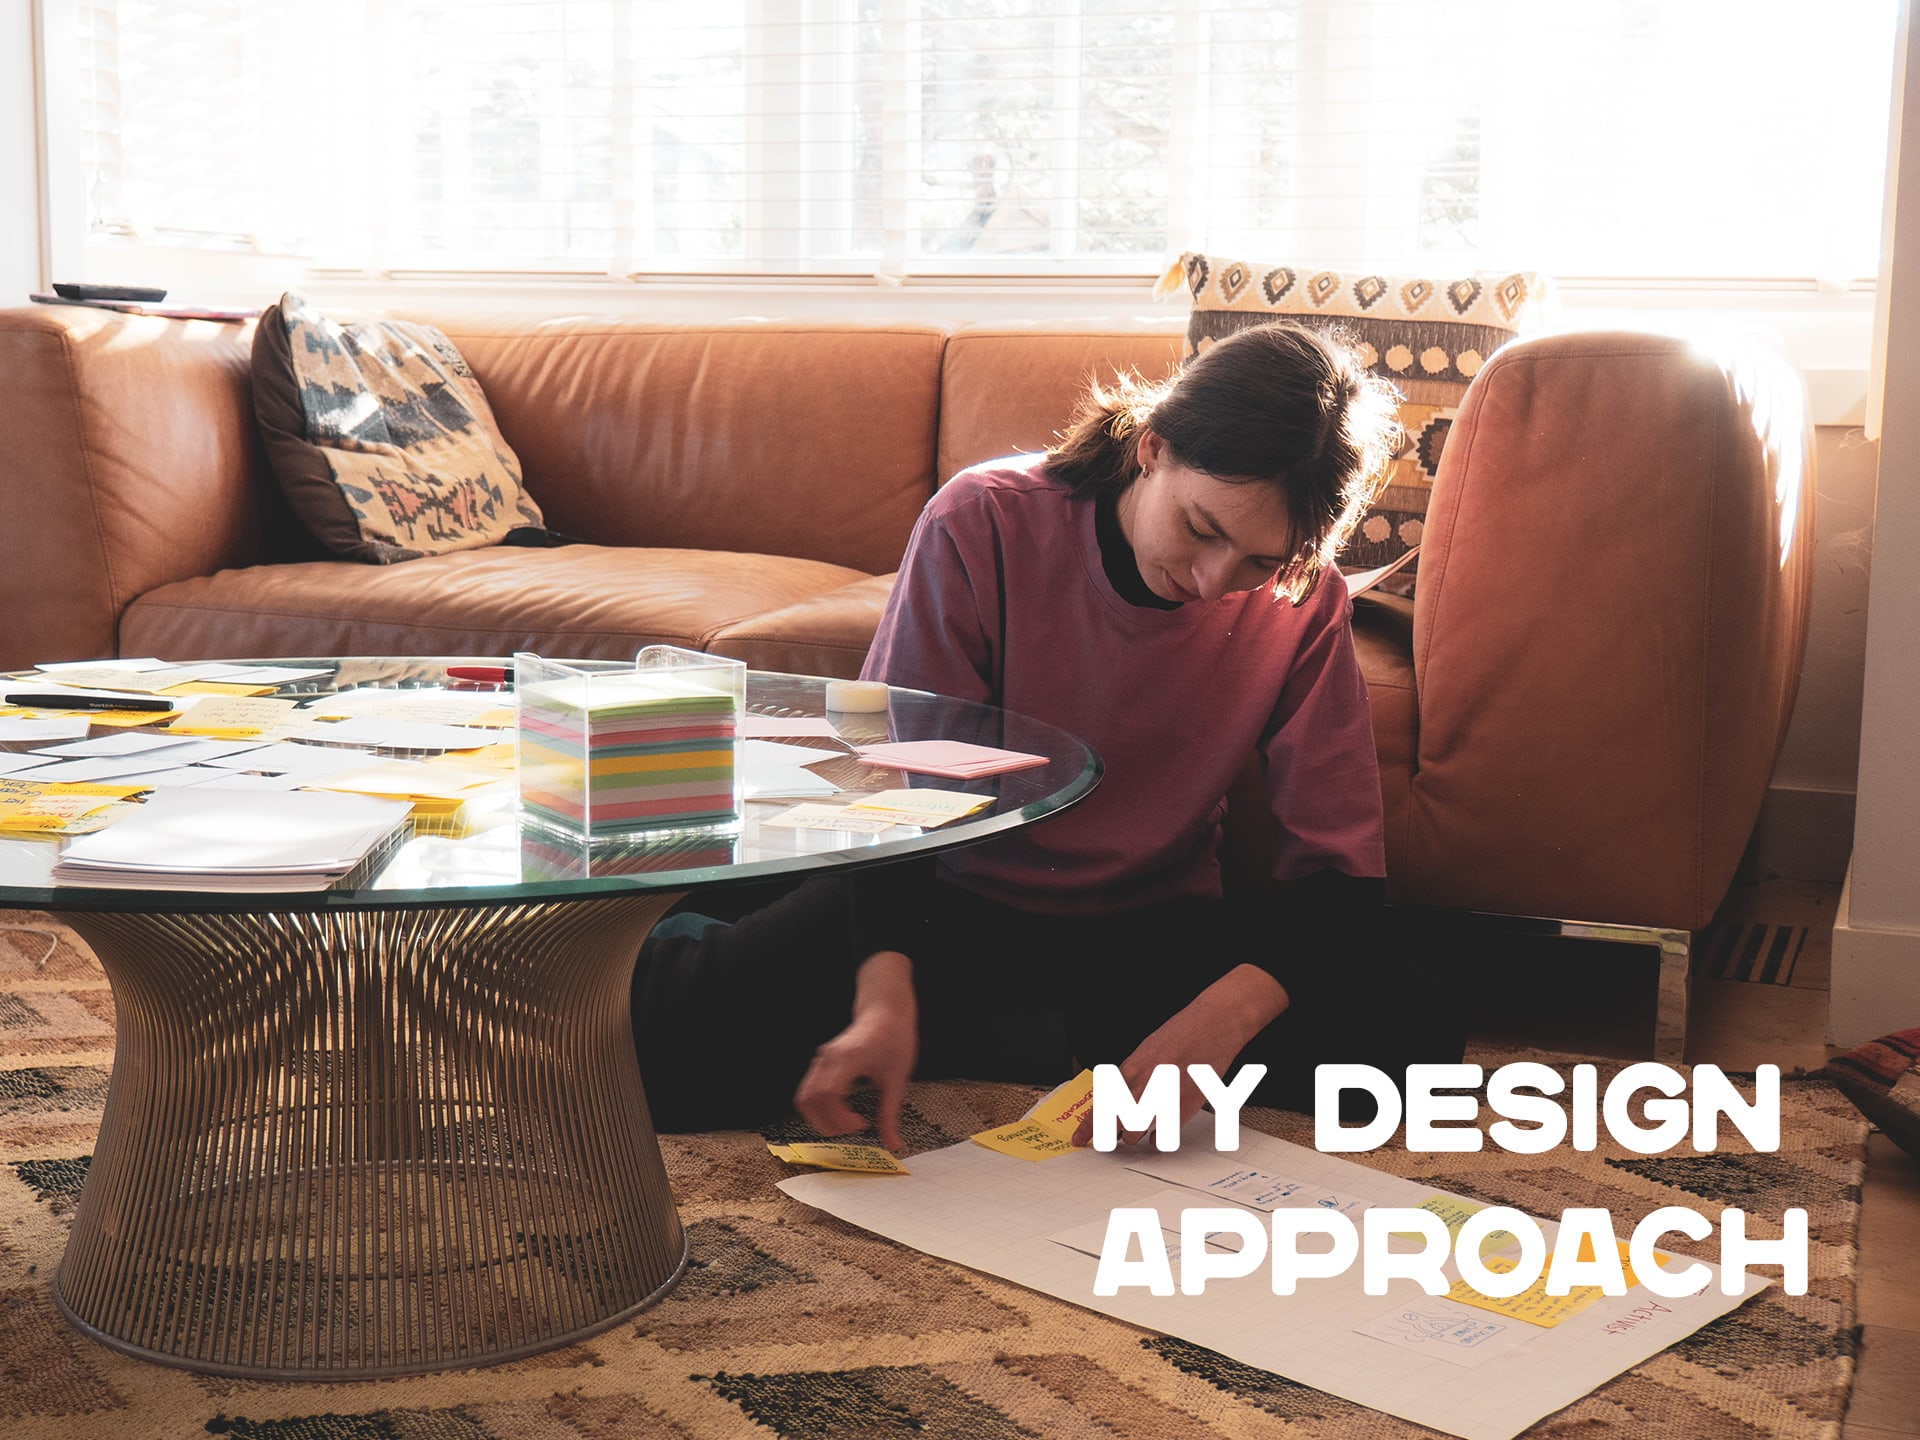 My Design Approach